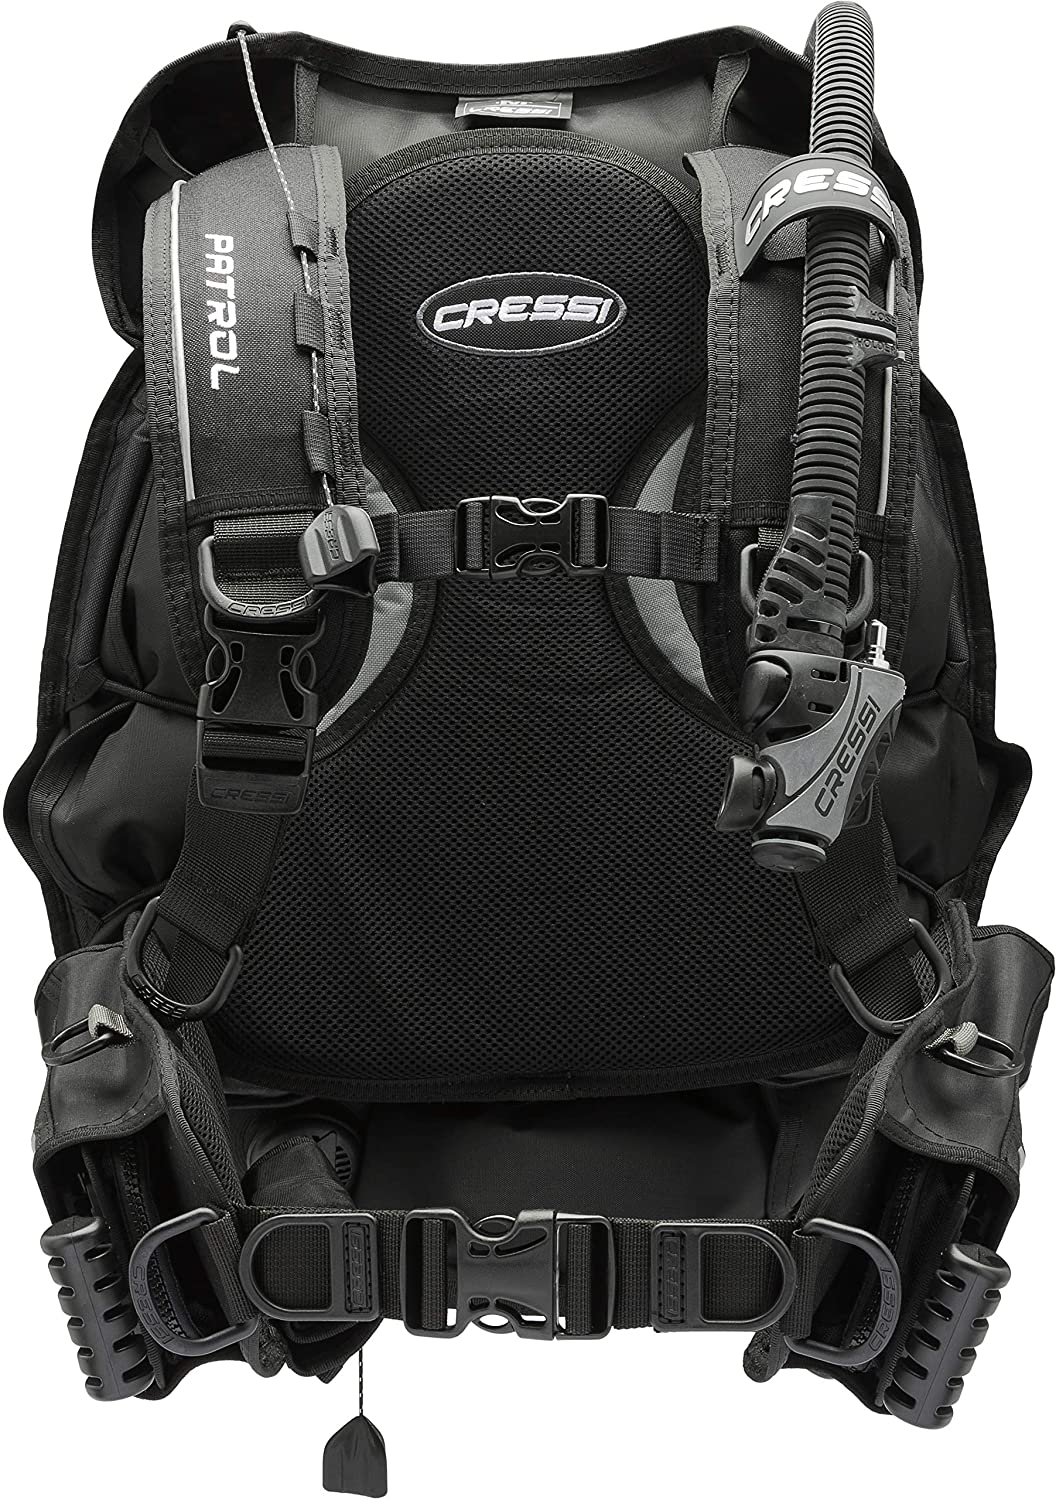 Cressi Travel-Friendly Light Back Inflation New products, world's highest quality popular! Diving Sale item for Scuba BCD